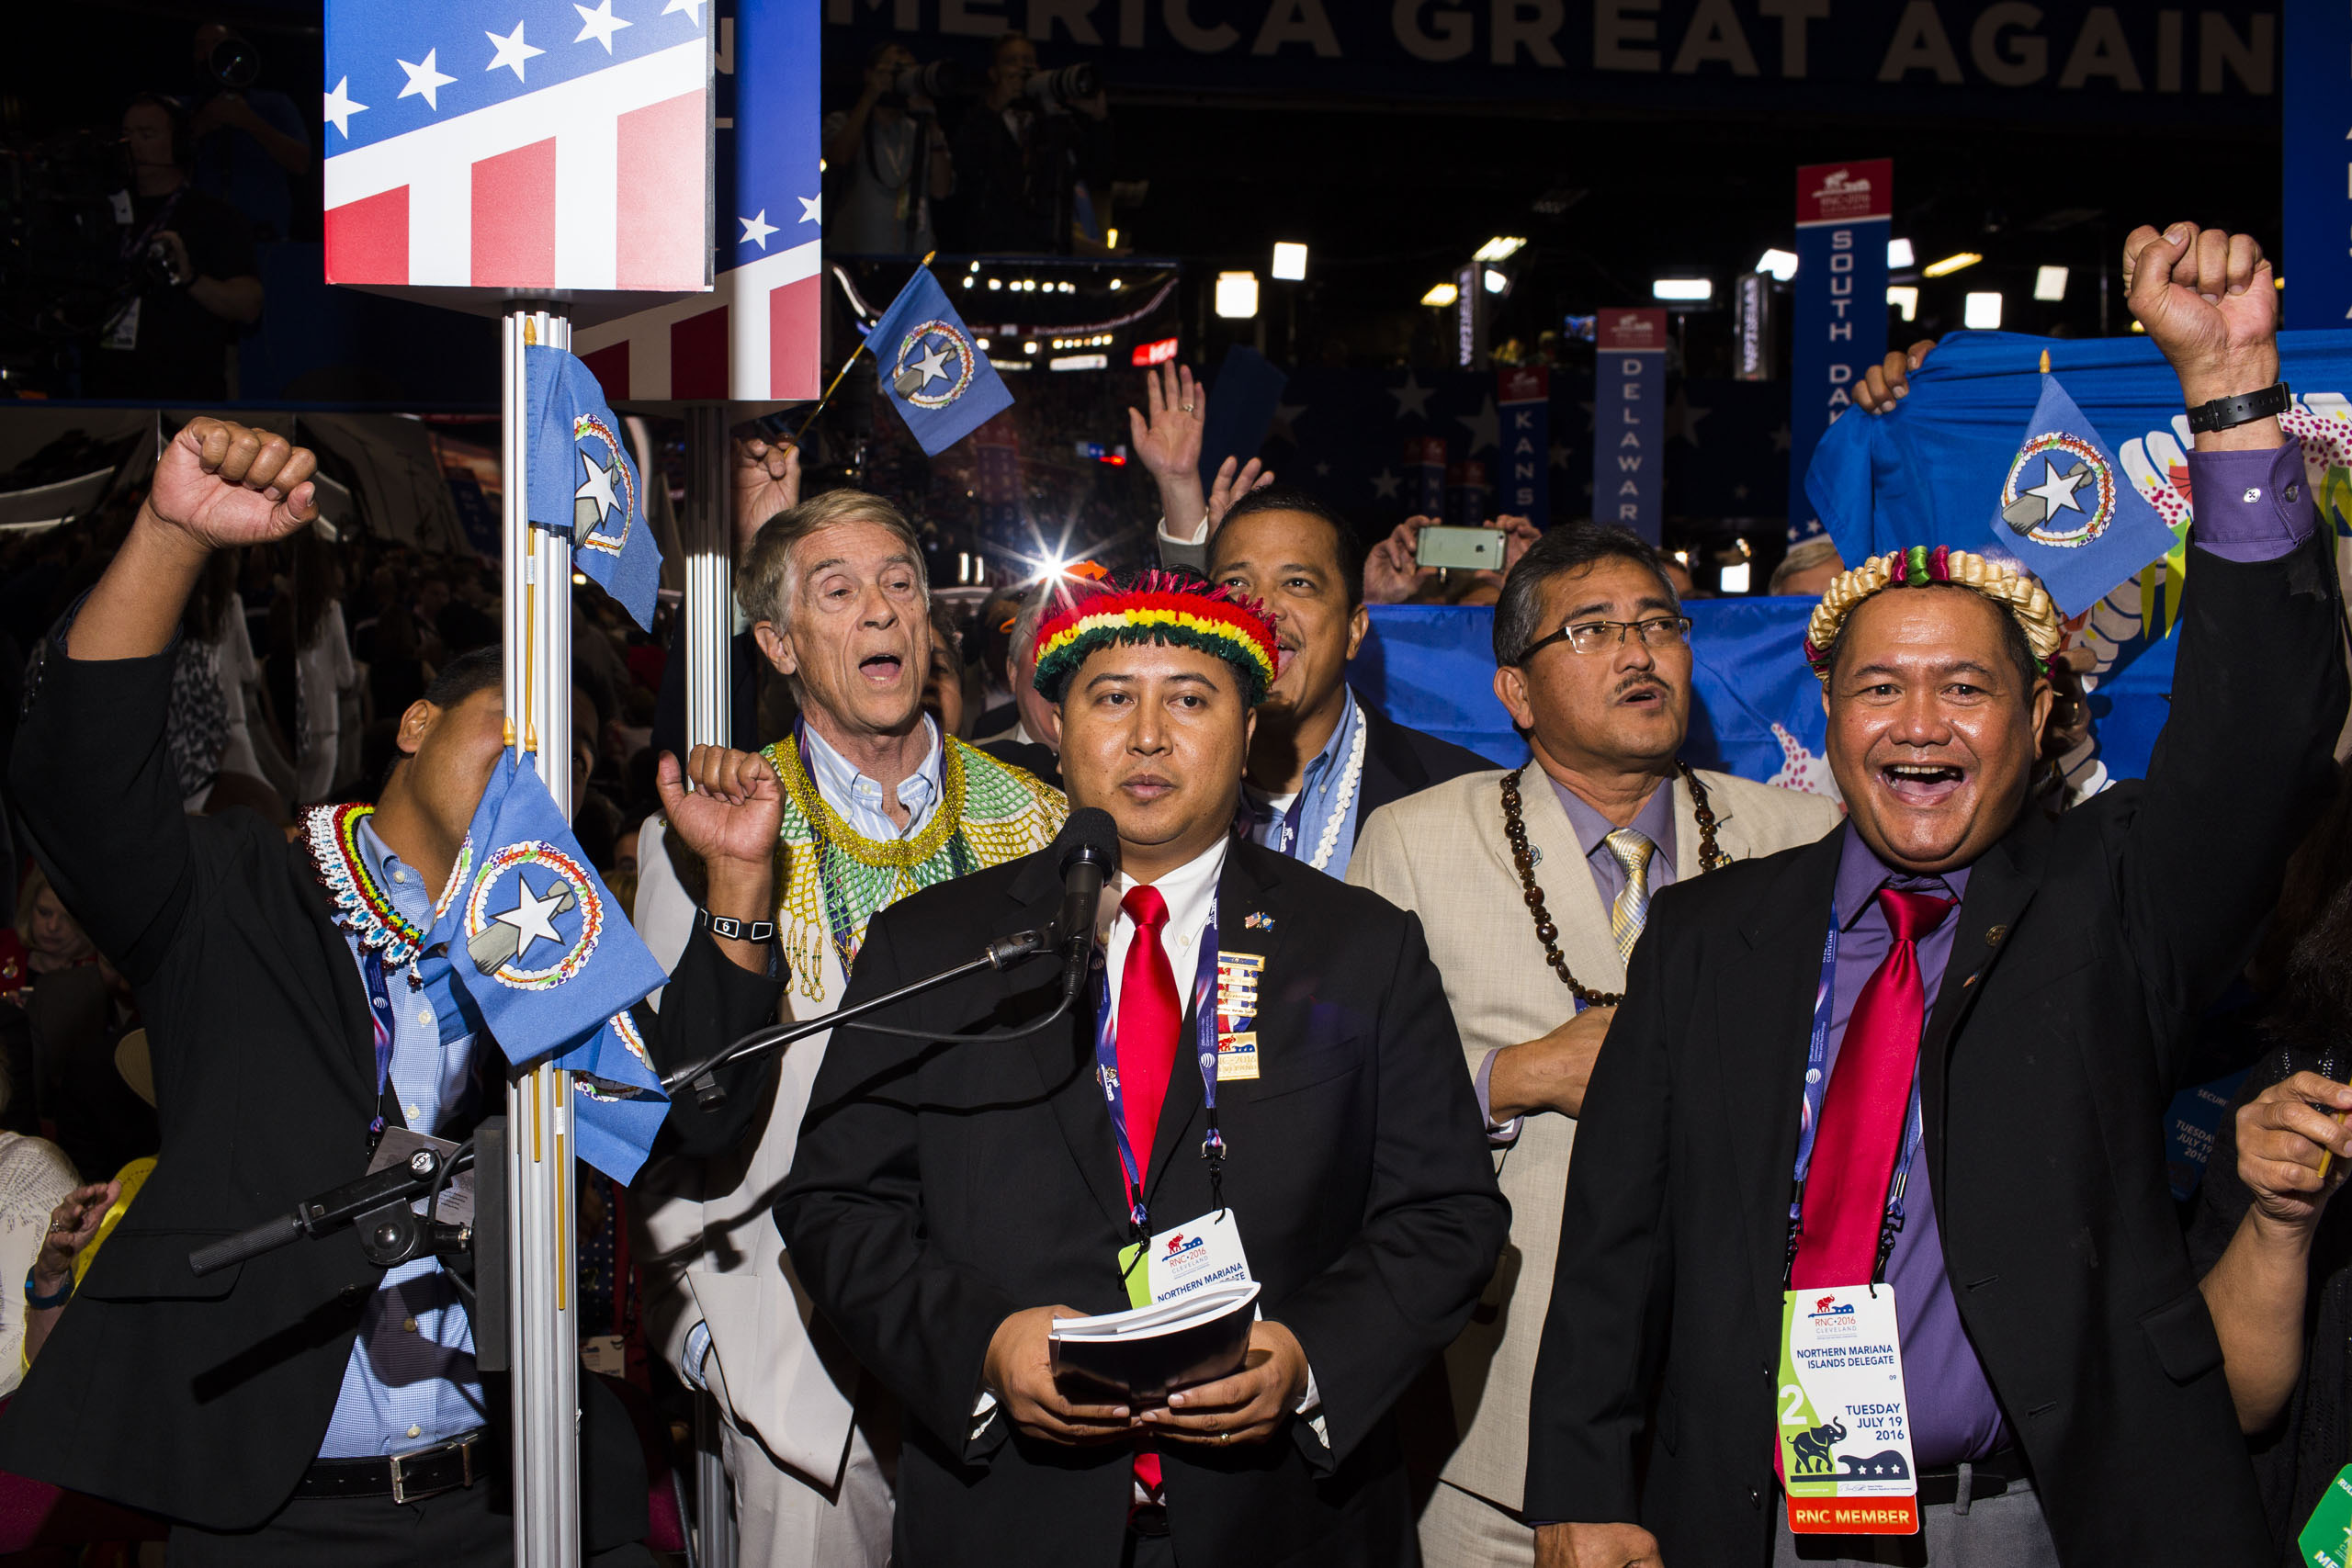 Northern Mariana Island delegates on the floor at the Republican National Convention, July 19, 2016 in Cleveland.